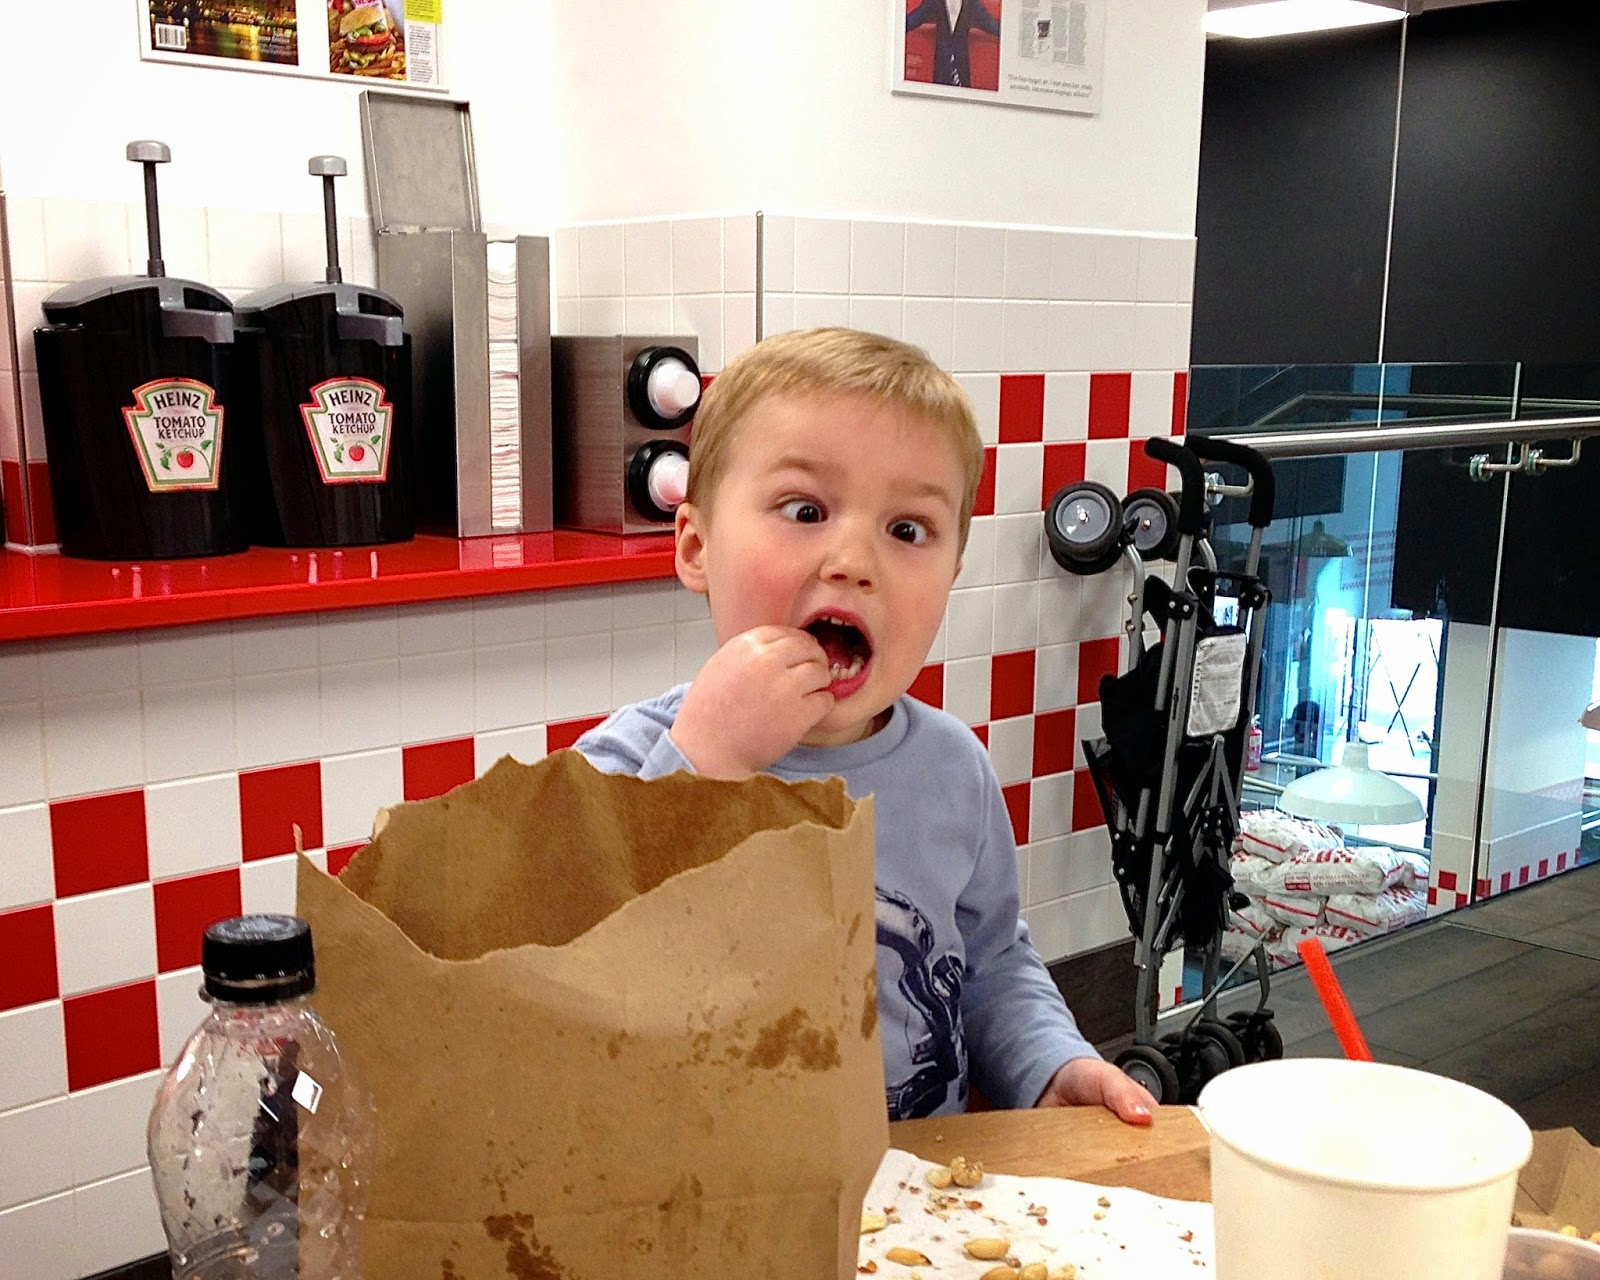 Going crazy (eyes) for Five Guys